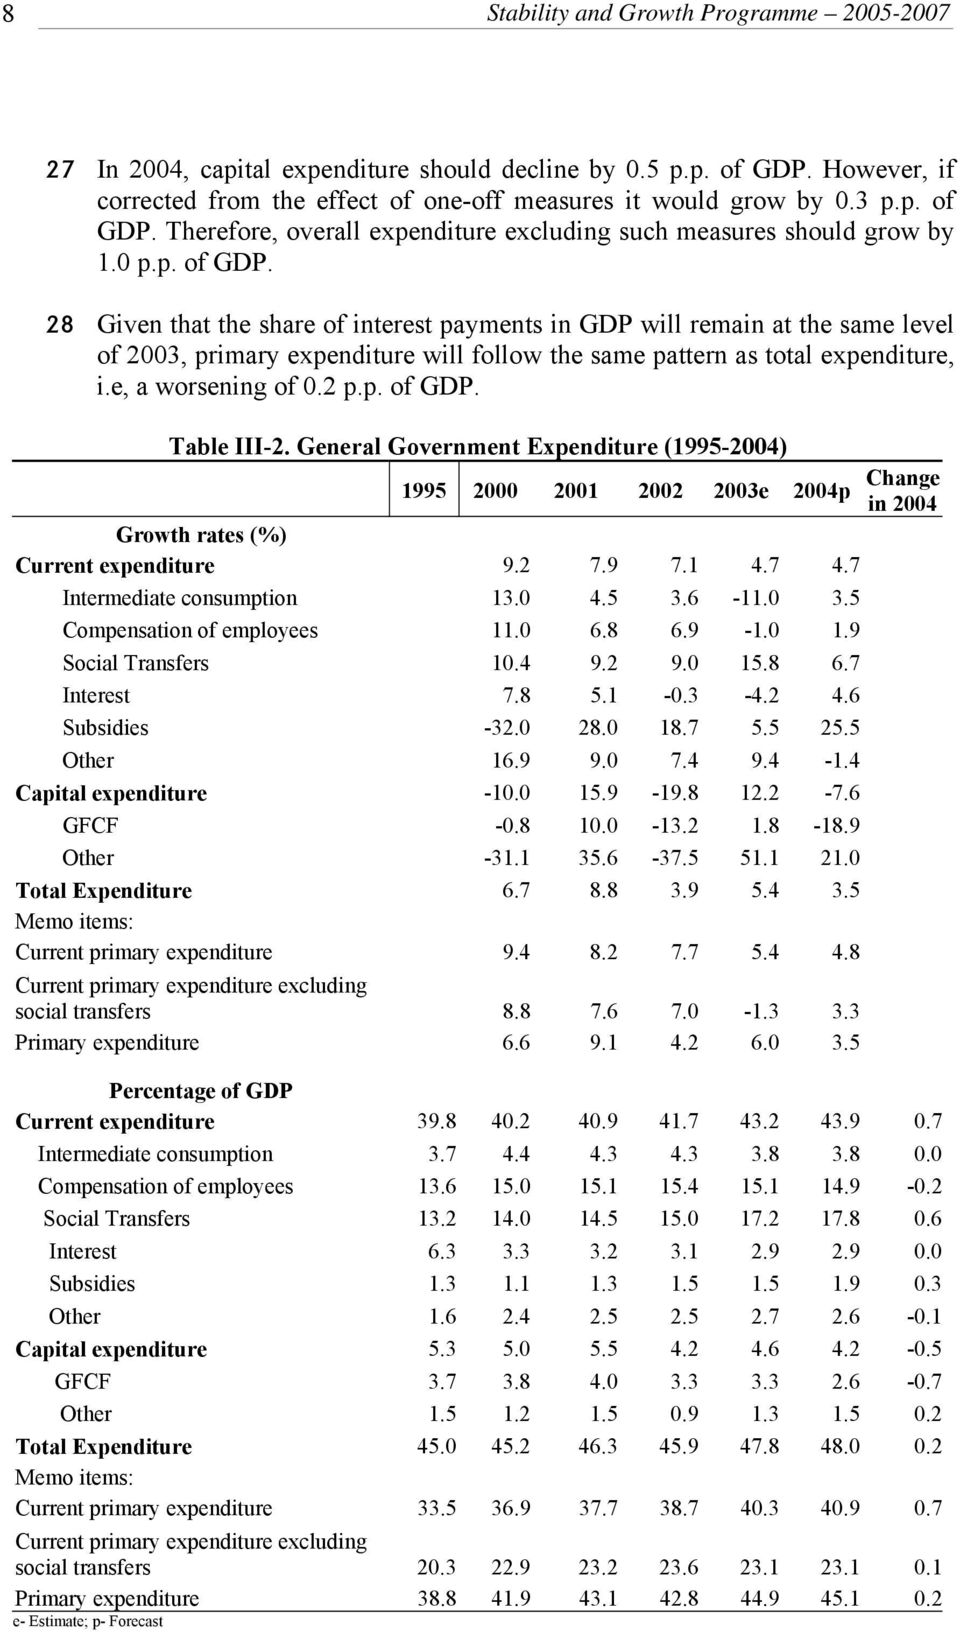 2 p.p. of GDP. Table III-2. General Government Expenditure (1995-2004) 1995 2000 2001 2002 2003e 2004p Change in 2004 Growth rates (%) Current expenditure 9.2 7.9 7.1 4.7 4.